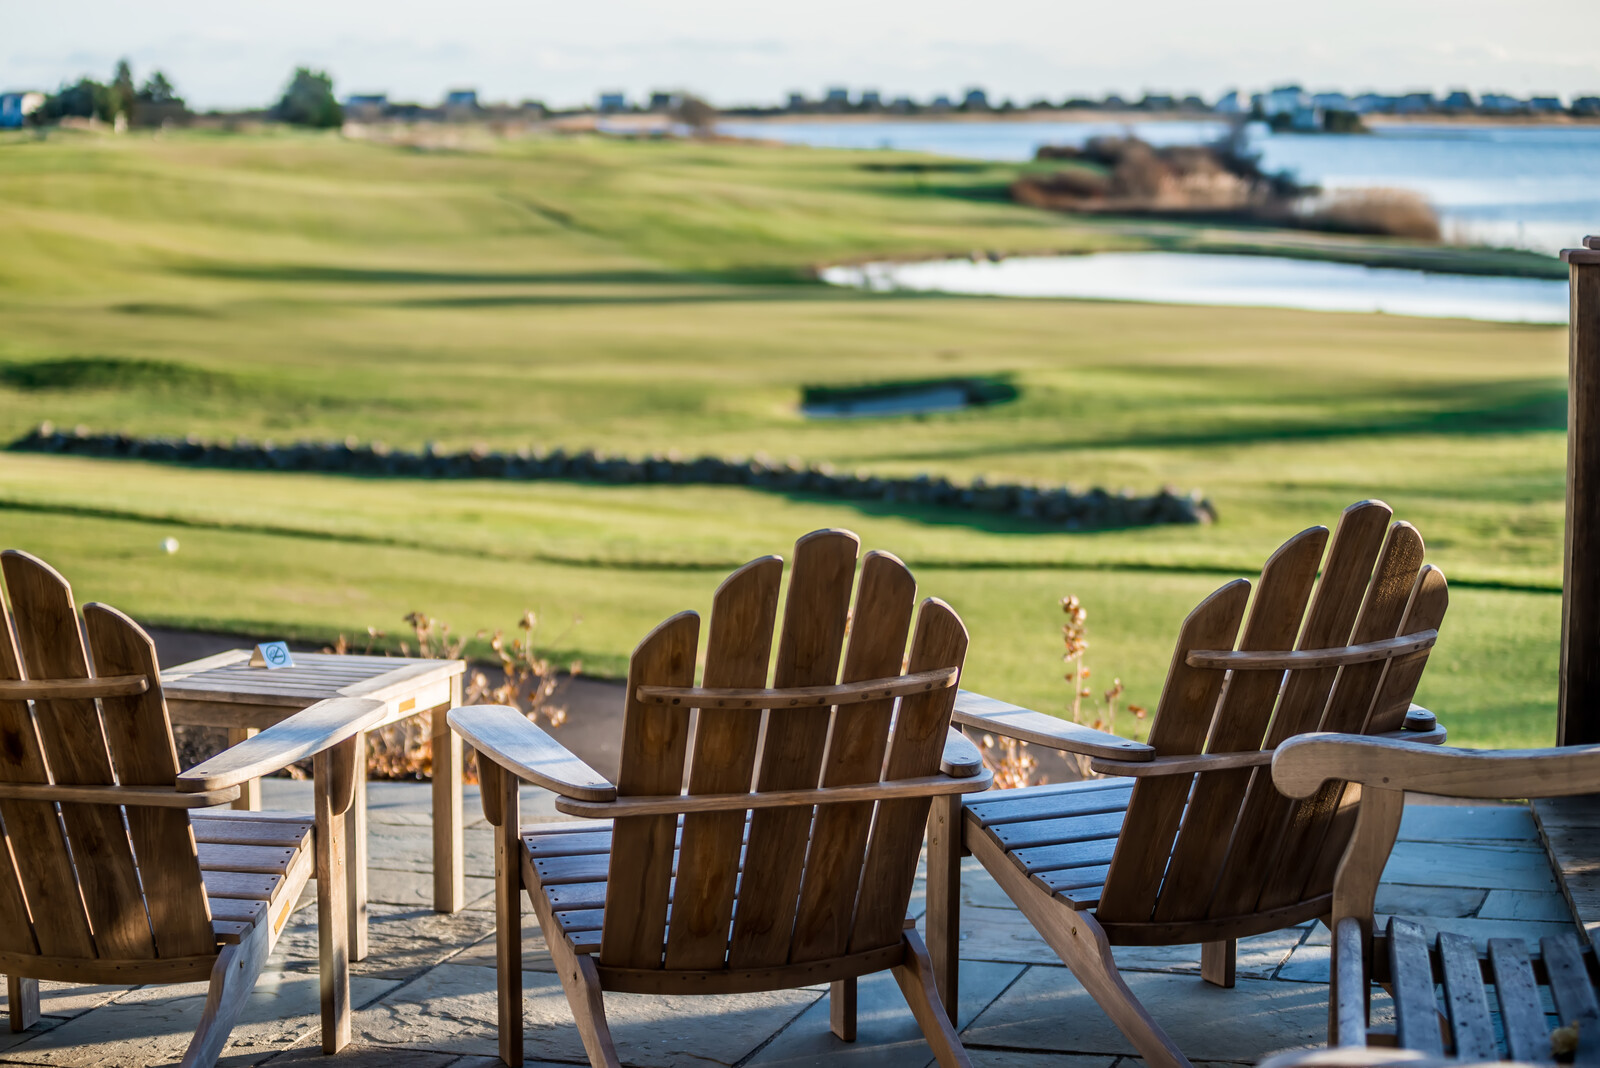 Sunny day at Weekapaug golf club from the patio with three deck chairs and small table overlooking the greens and sand trap